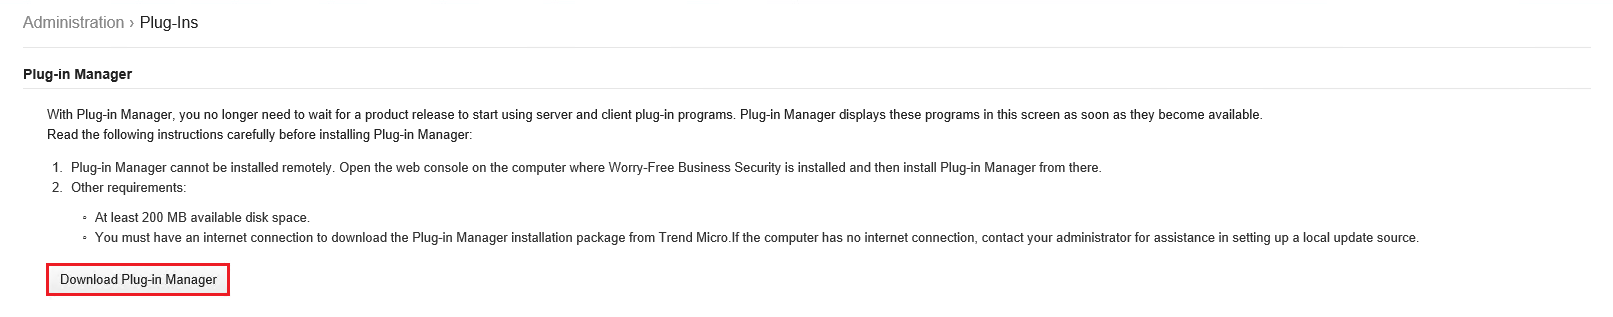 Download Plug-in Manager